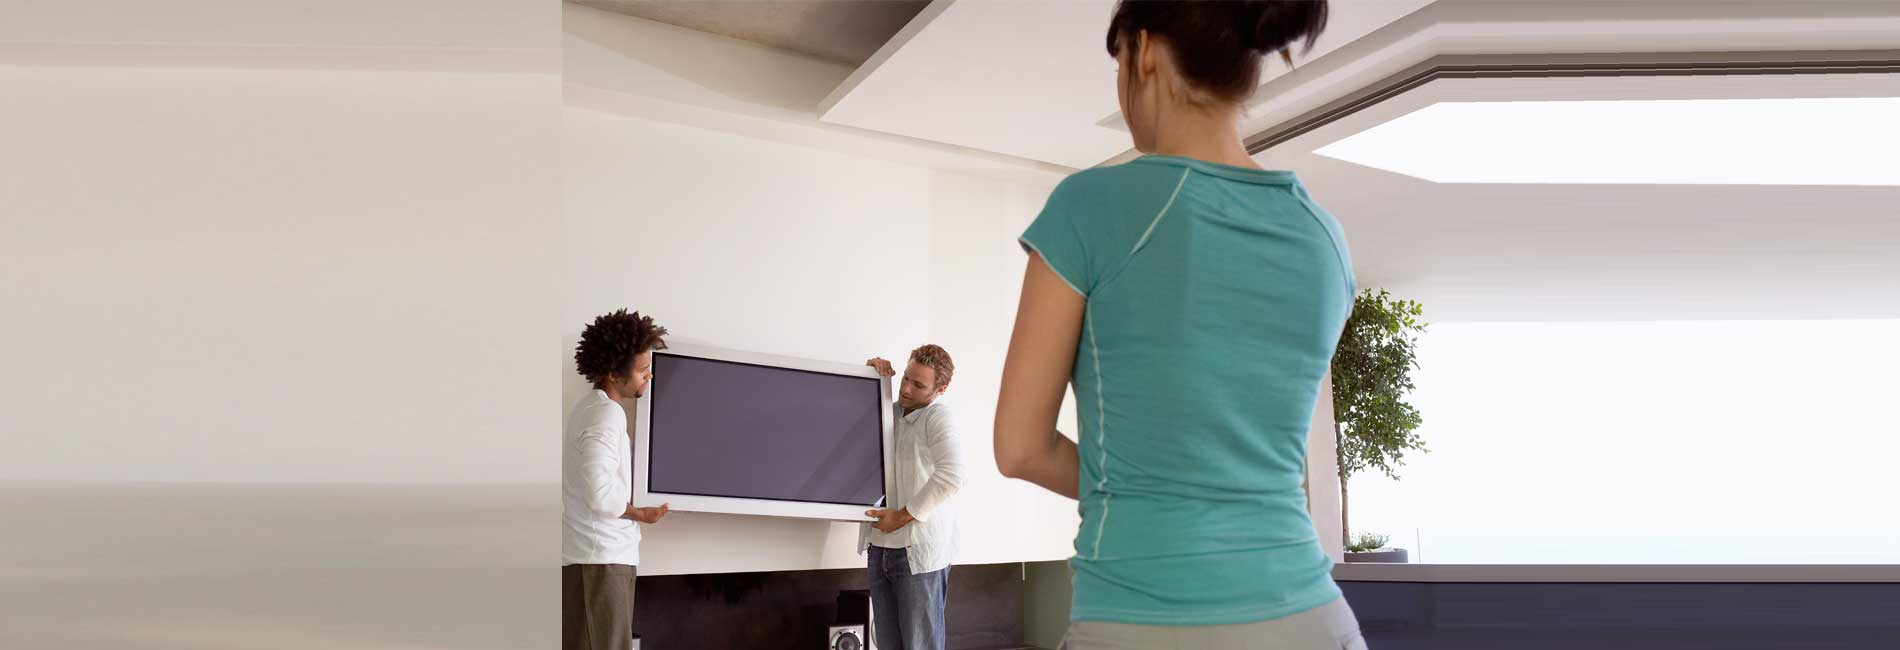 Techvision offers 65 inch tv wall mounts